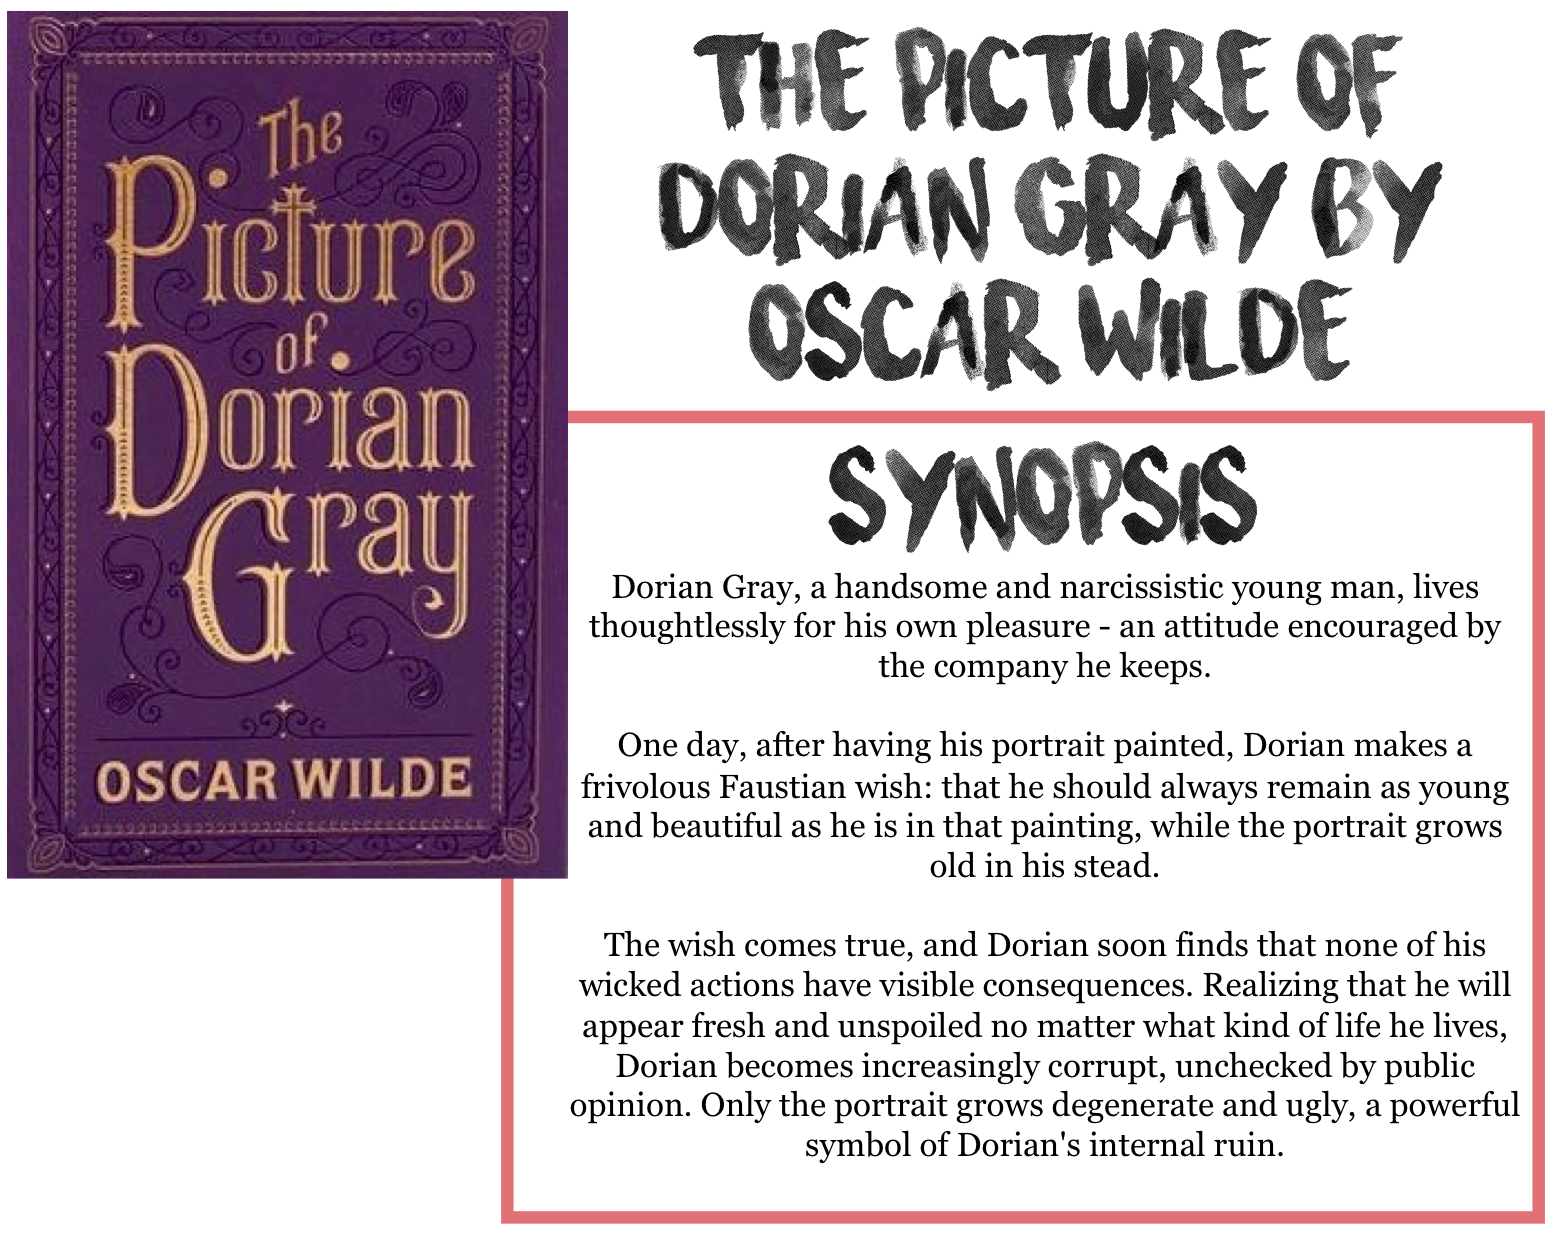 Horror Movie Essay A Review Of Oscar Wildes Book The Picture Of Dorian Gray Essay Helping Others also Examples Of An Essay Paper A Review Of Oscar Wildes Book The Picture Of Dorian Gray Essay Help The Crucible Essay On John Proctor